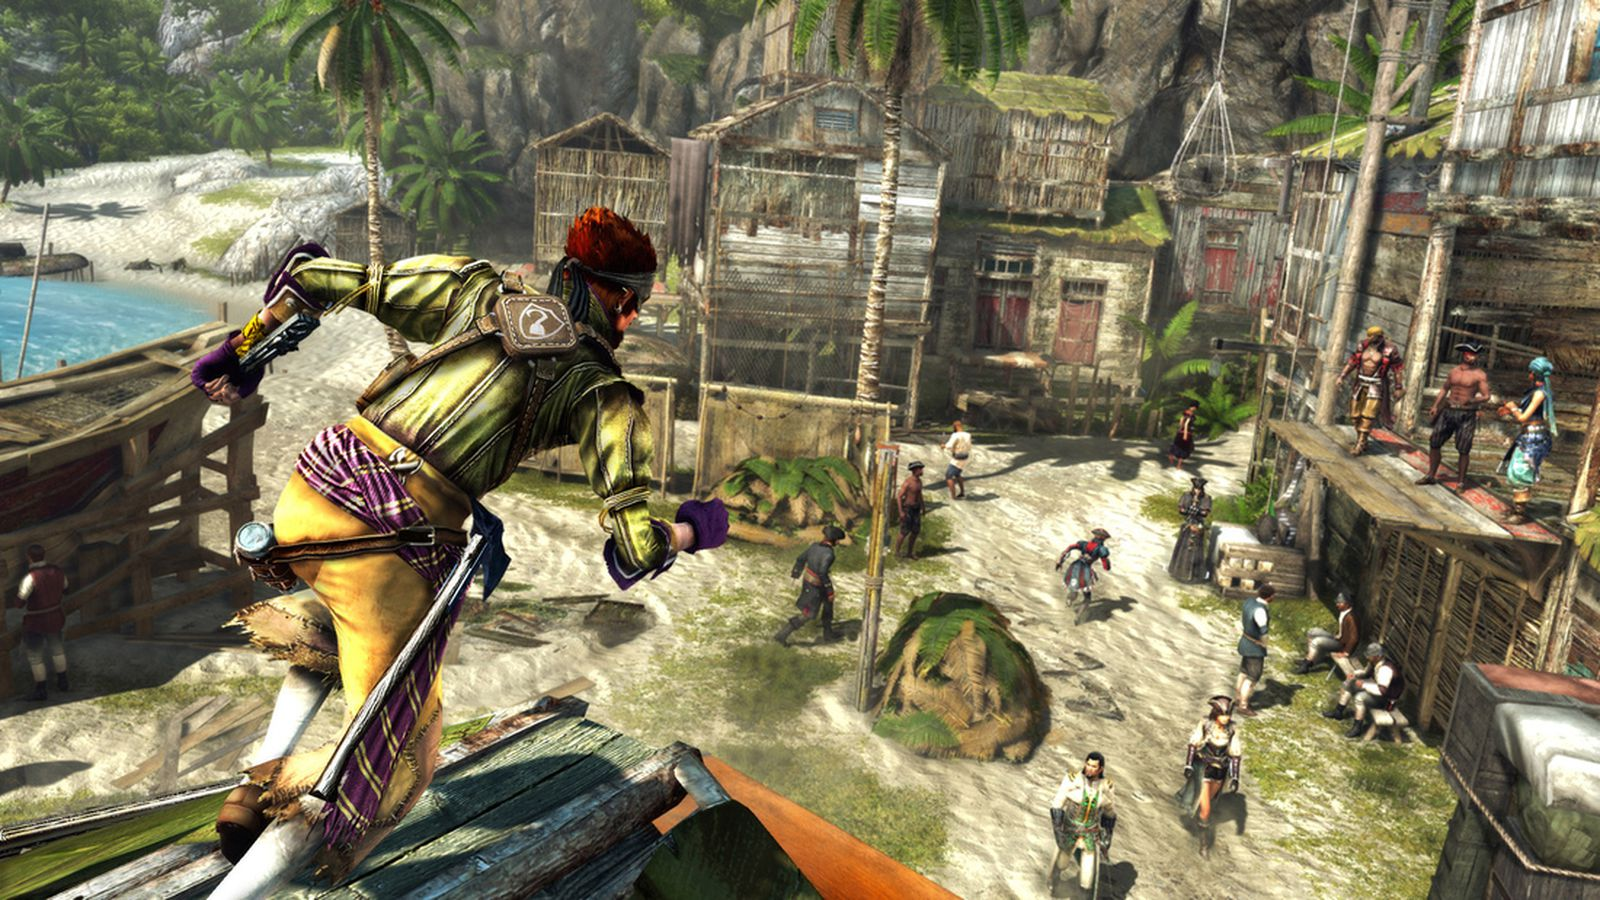 The Flying Dutchman: Assassins Creed IVs Second